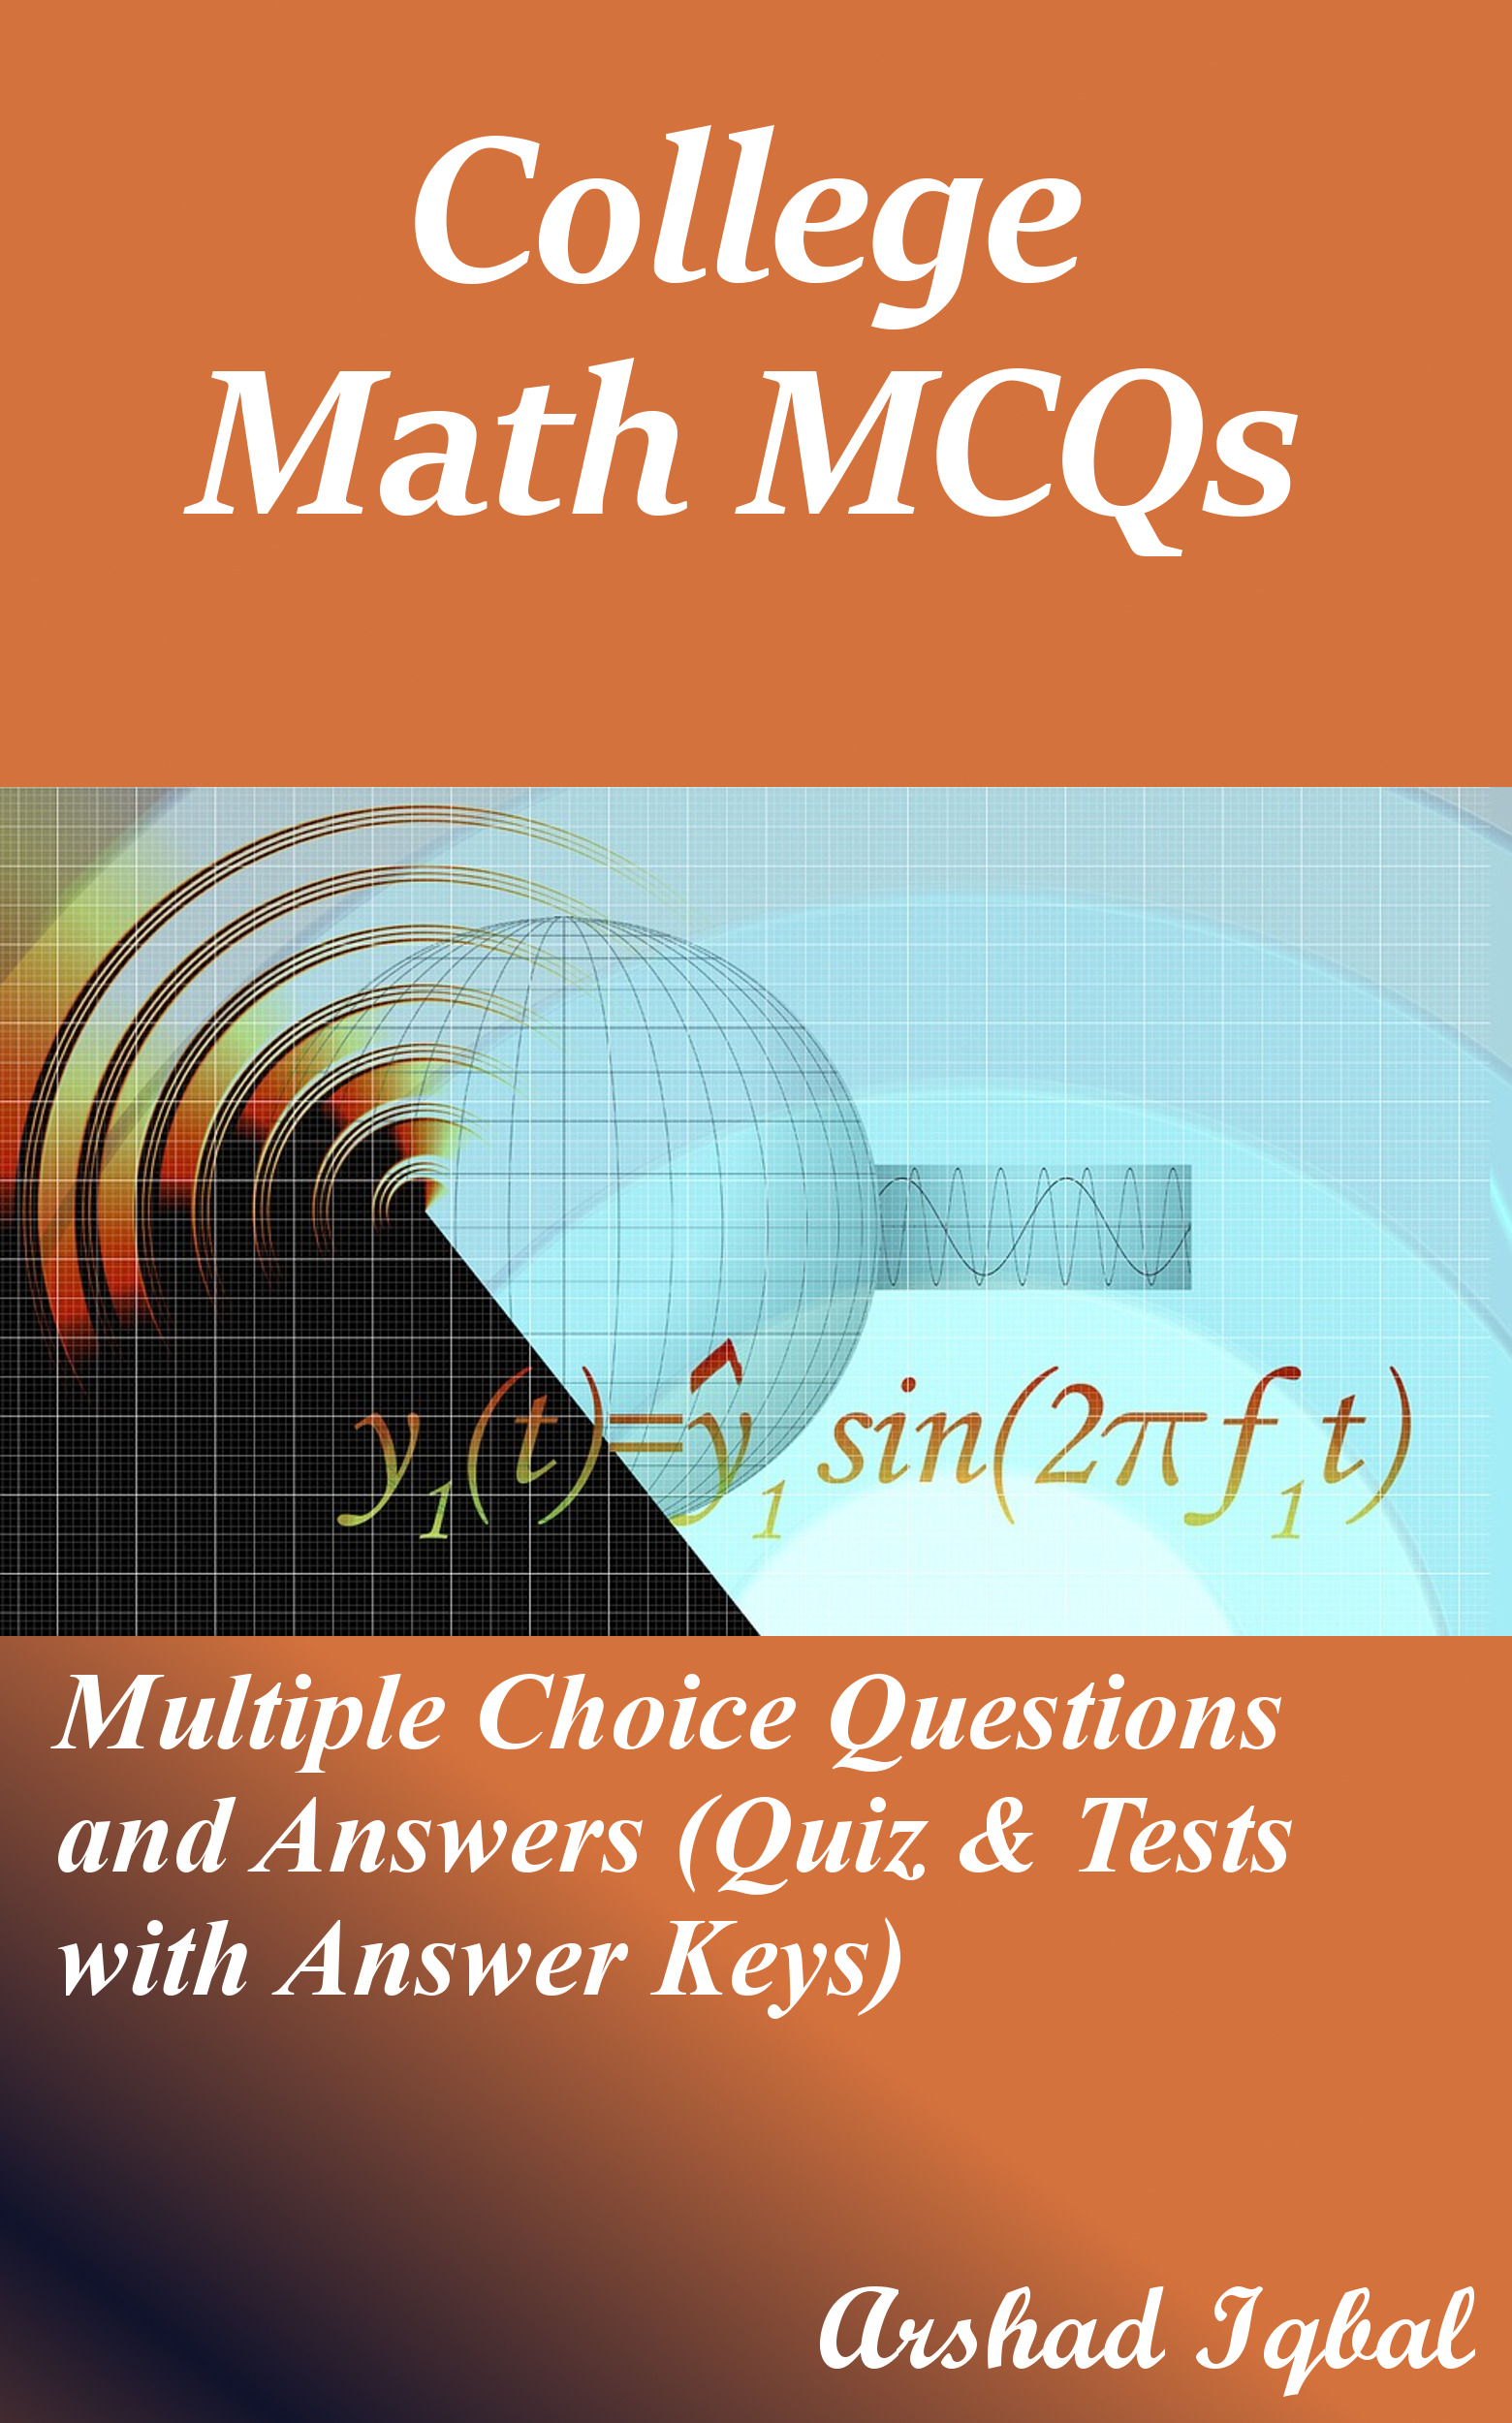 College Math Multiple Choice Questions and Answers (MCQs): Quizzes & Practice Tests with Answer Key